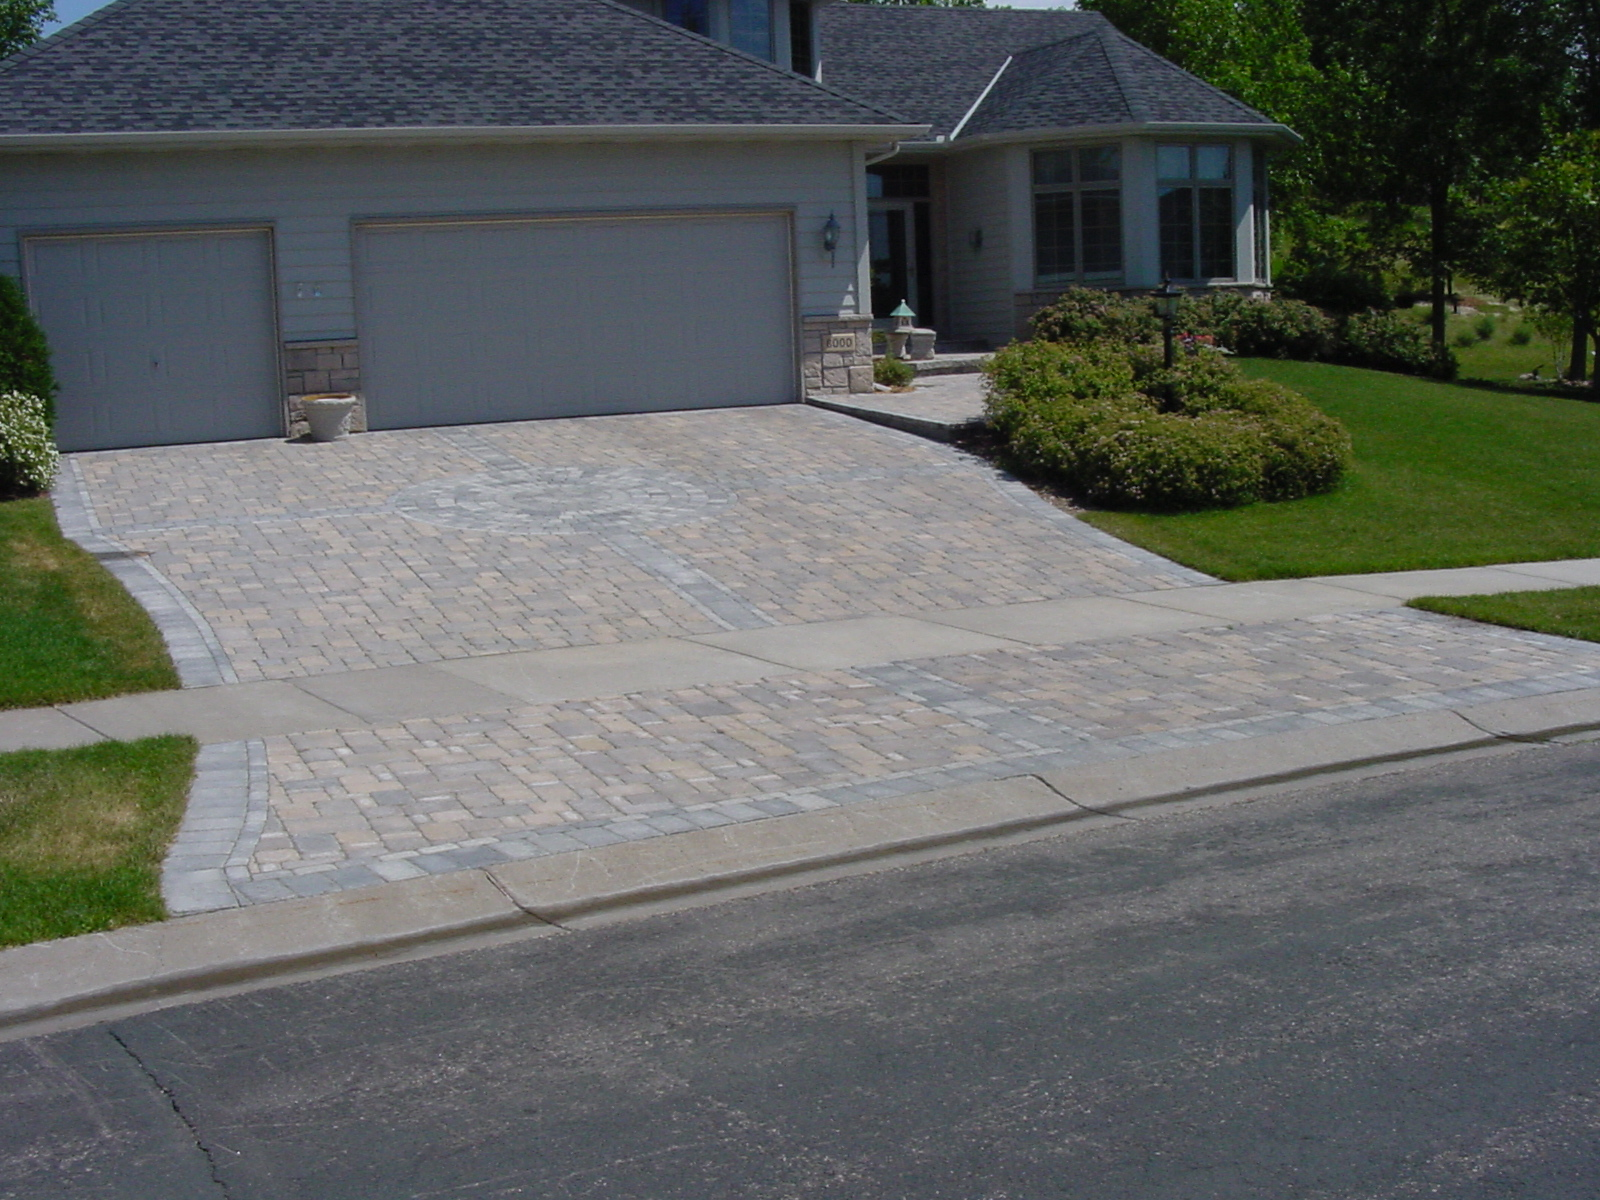 Benefits and drawbacks of concrete driveways for New concrete driveway